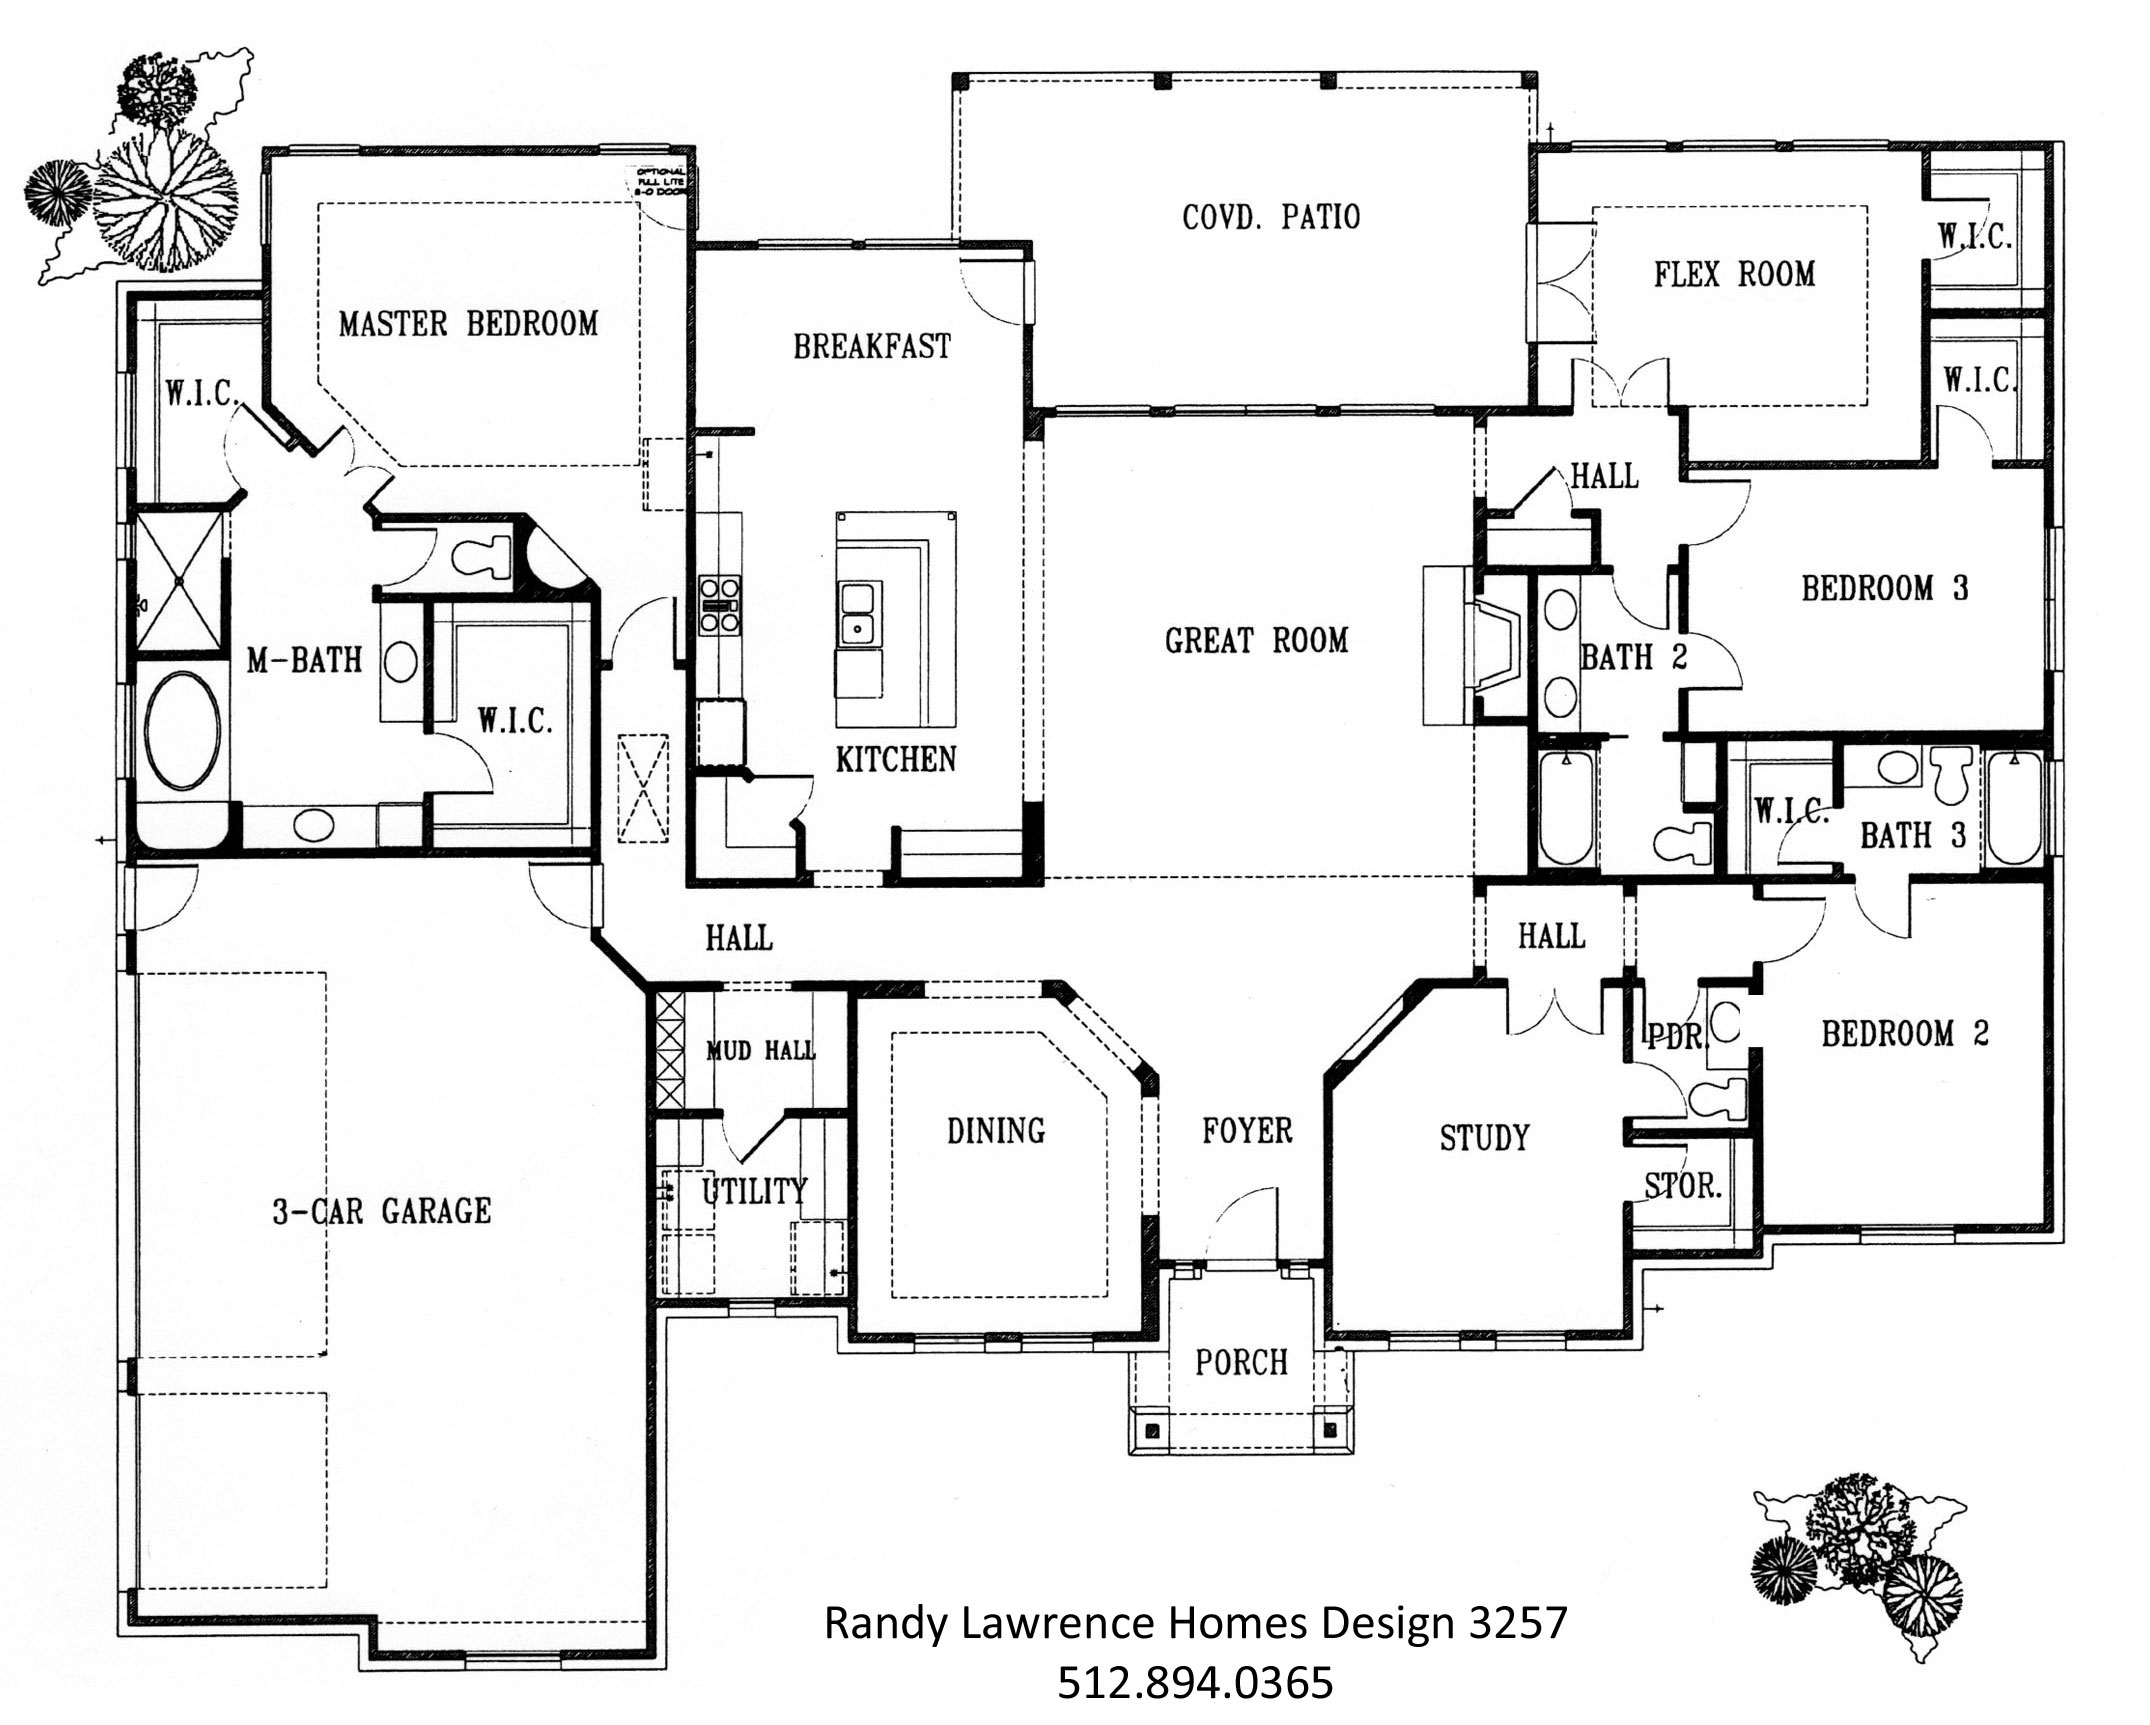 New home floor plans 17 best images about floor plans and Customize floor plans